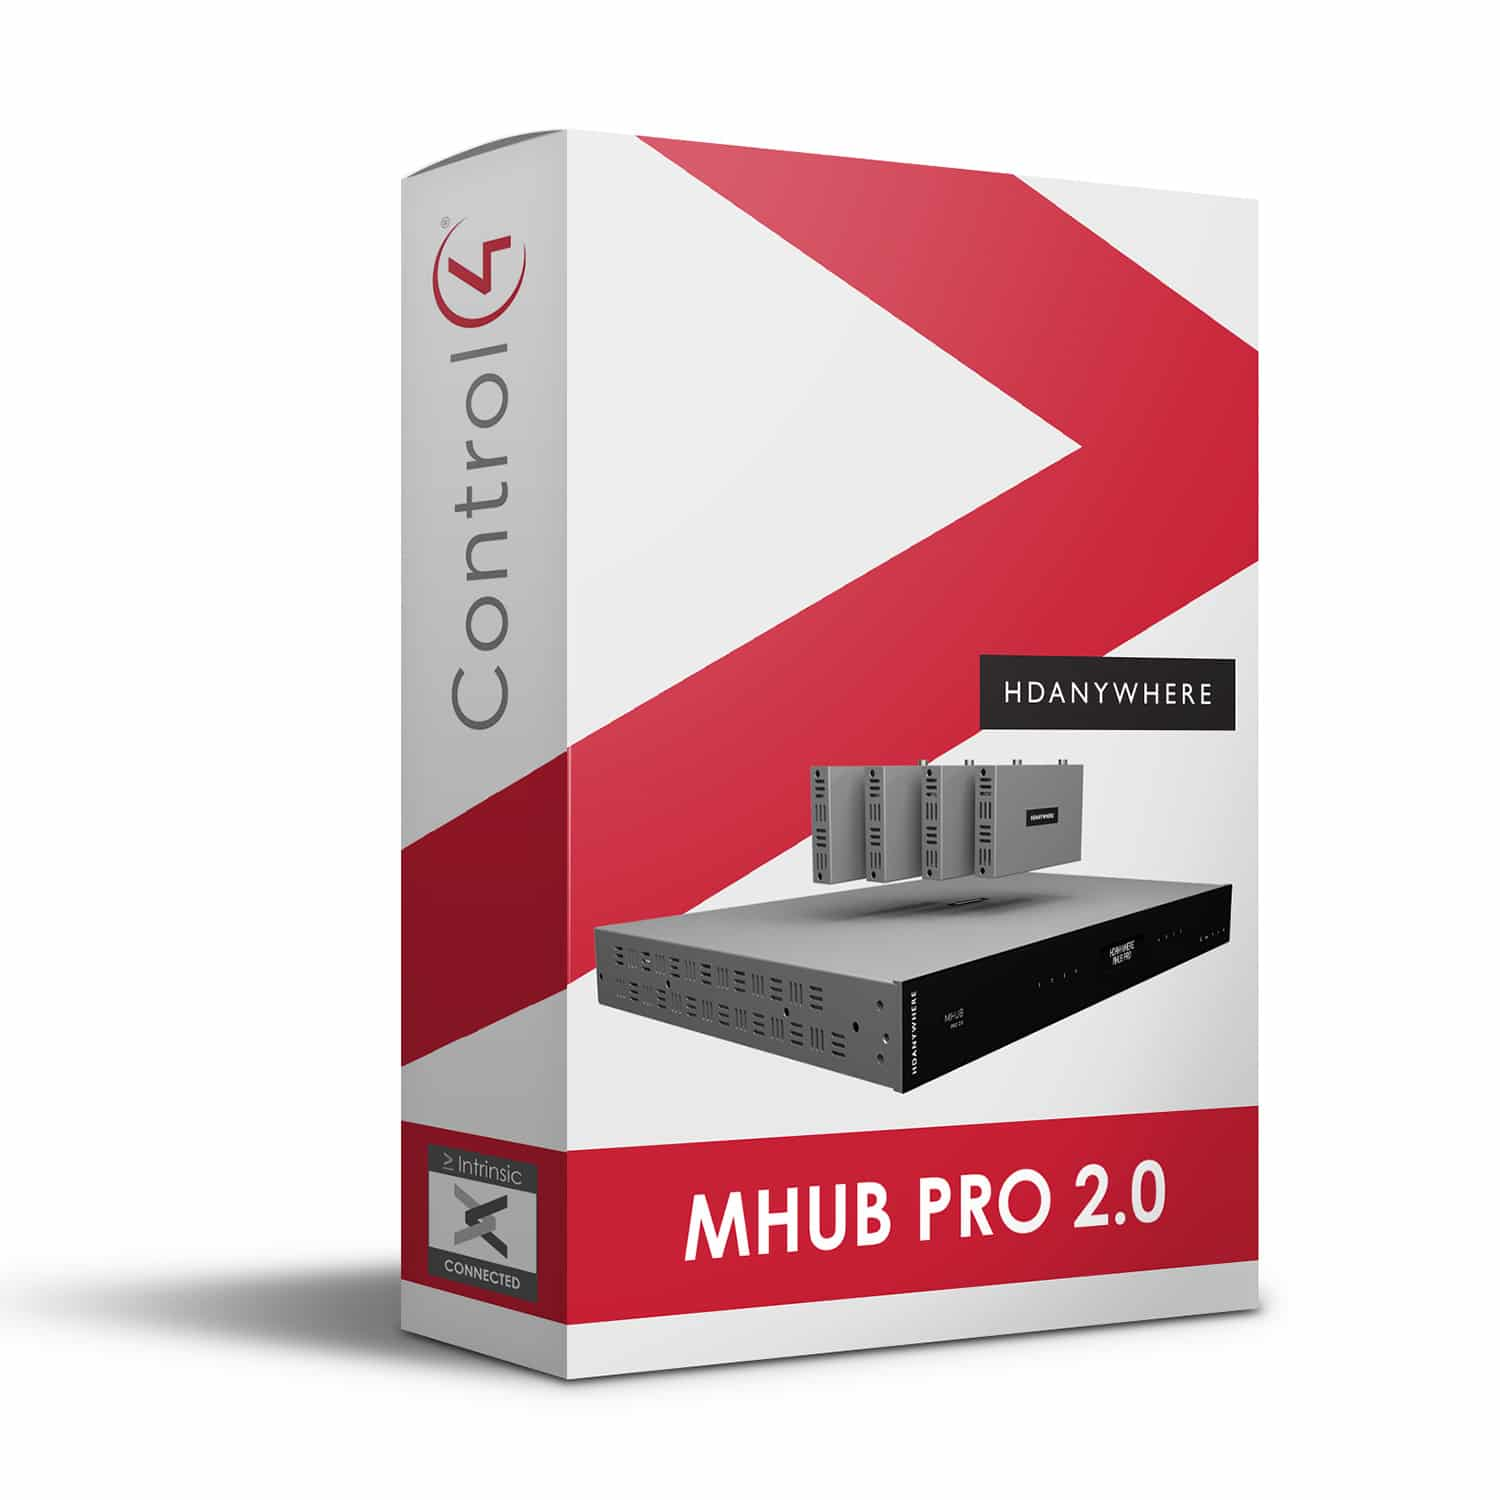 HDAnywhere MHUB PRO 2.0 Driver for Control4